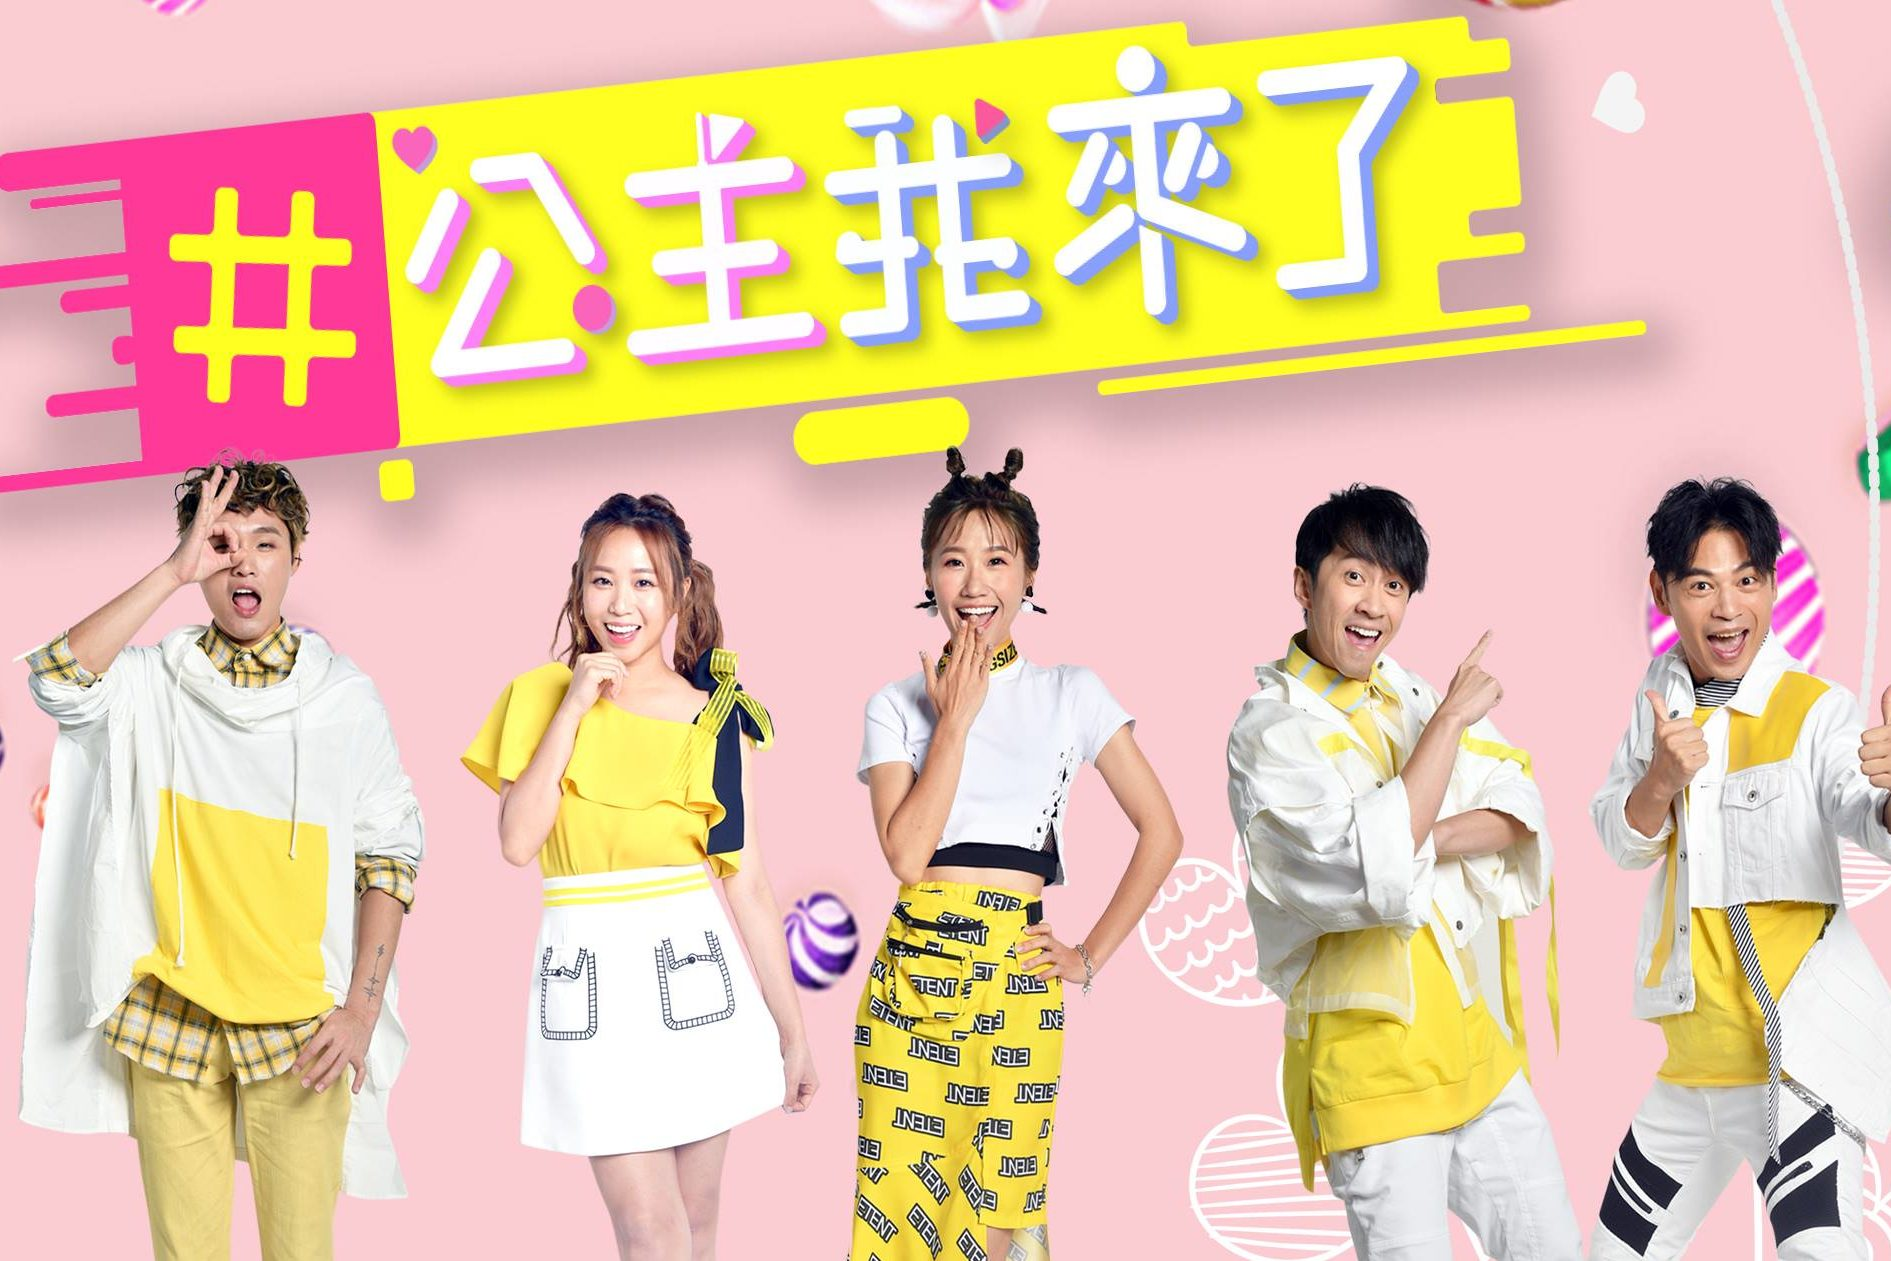 Sugoideas com - Taiwan Entertainment - Watch Taiwanese